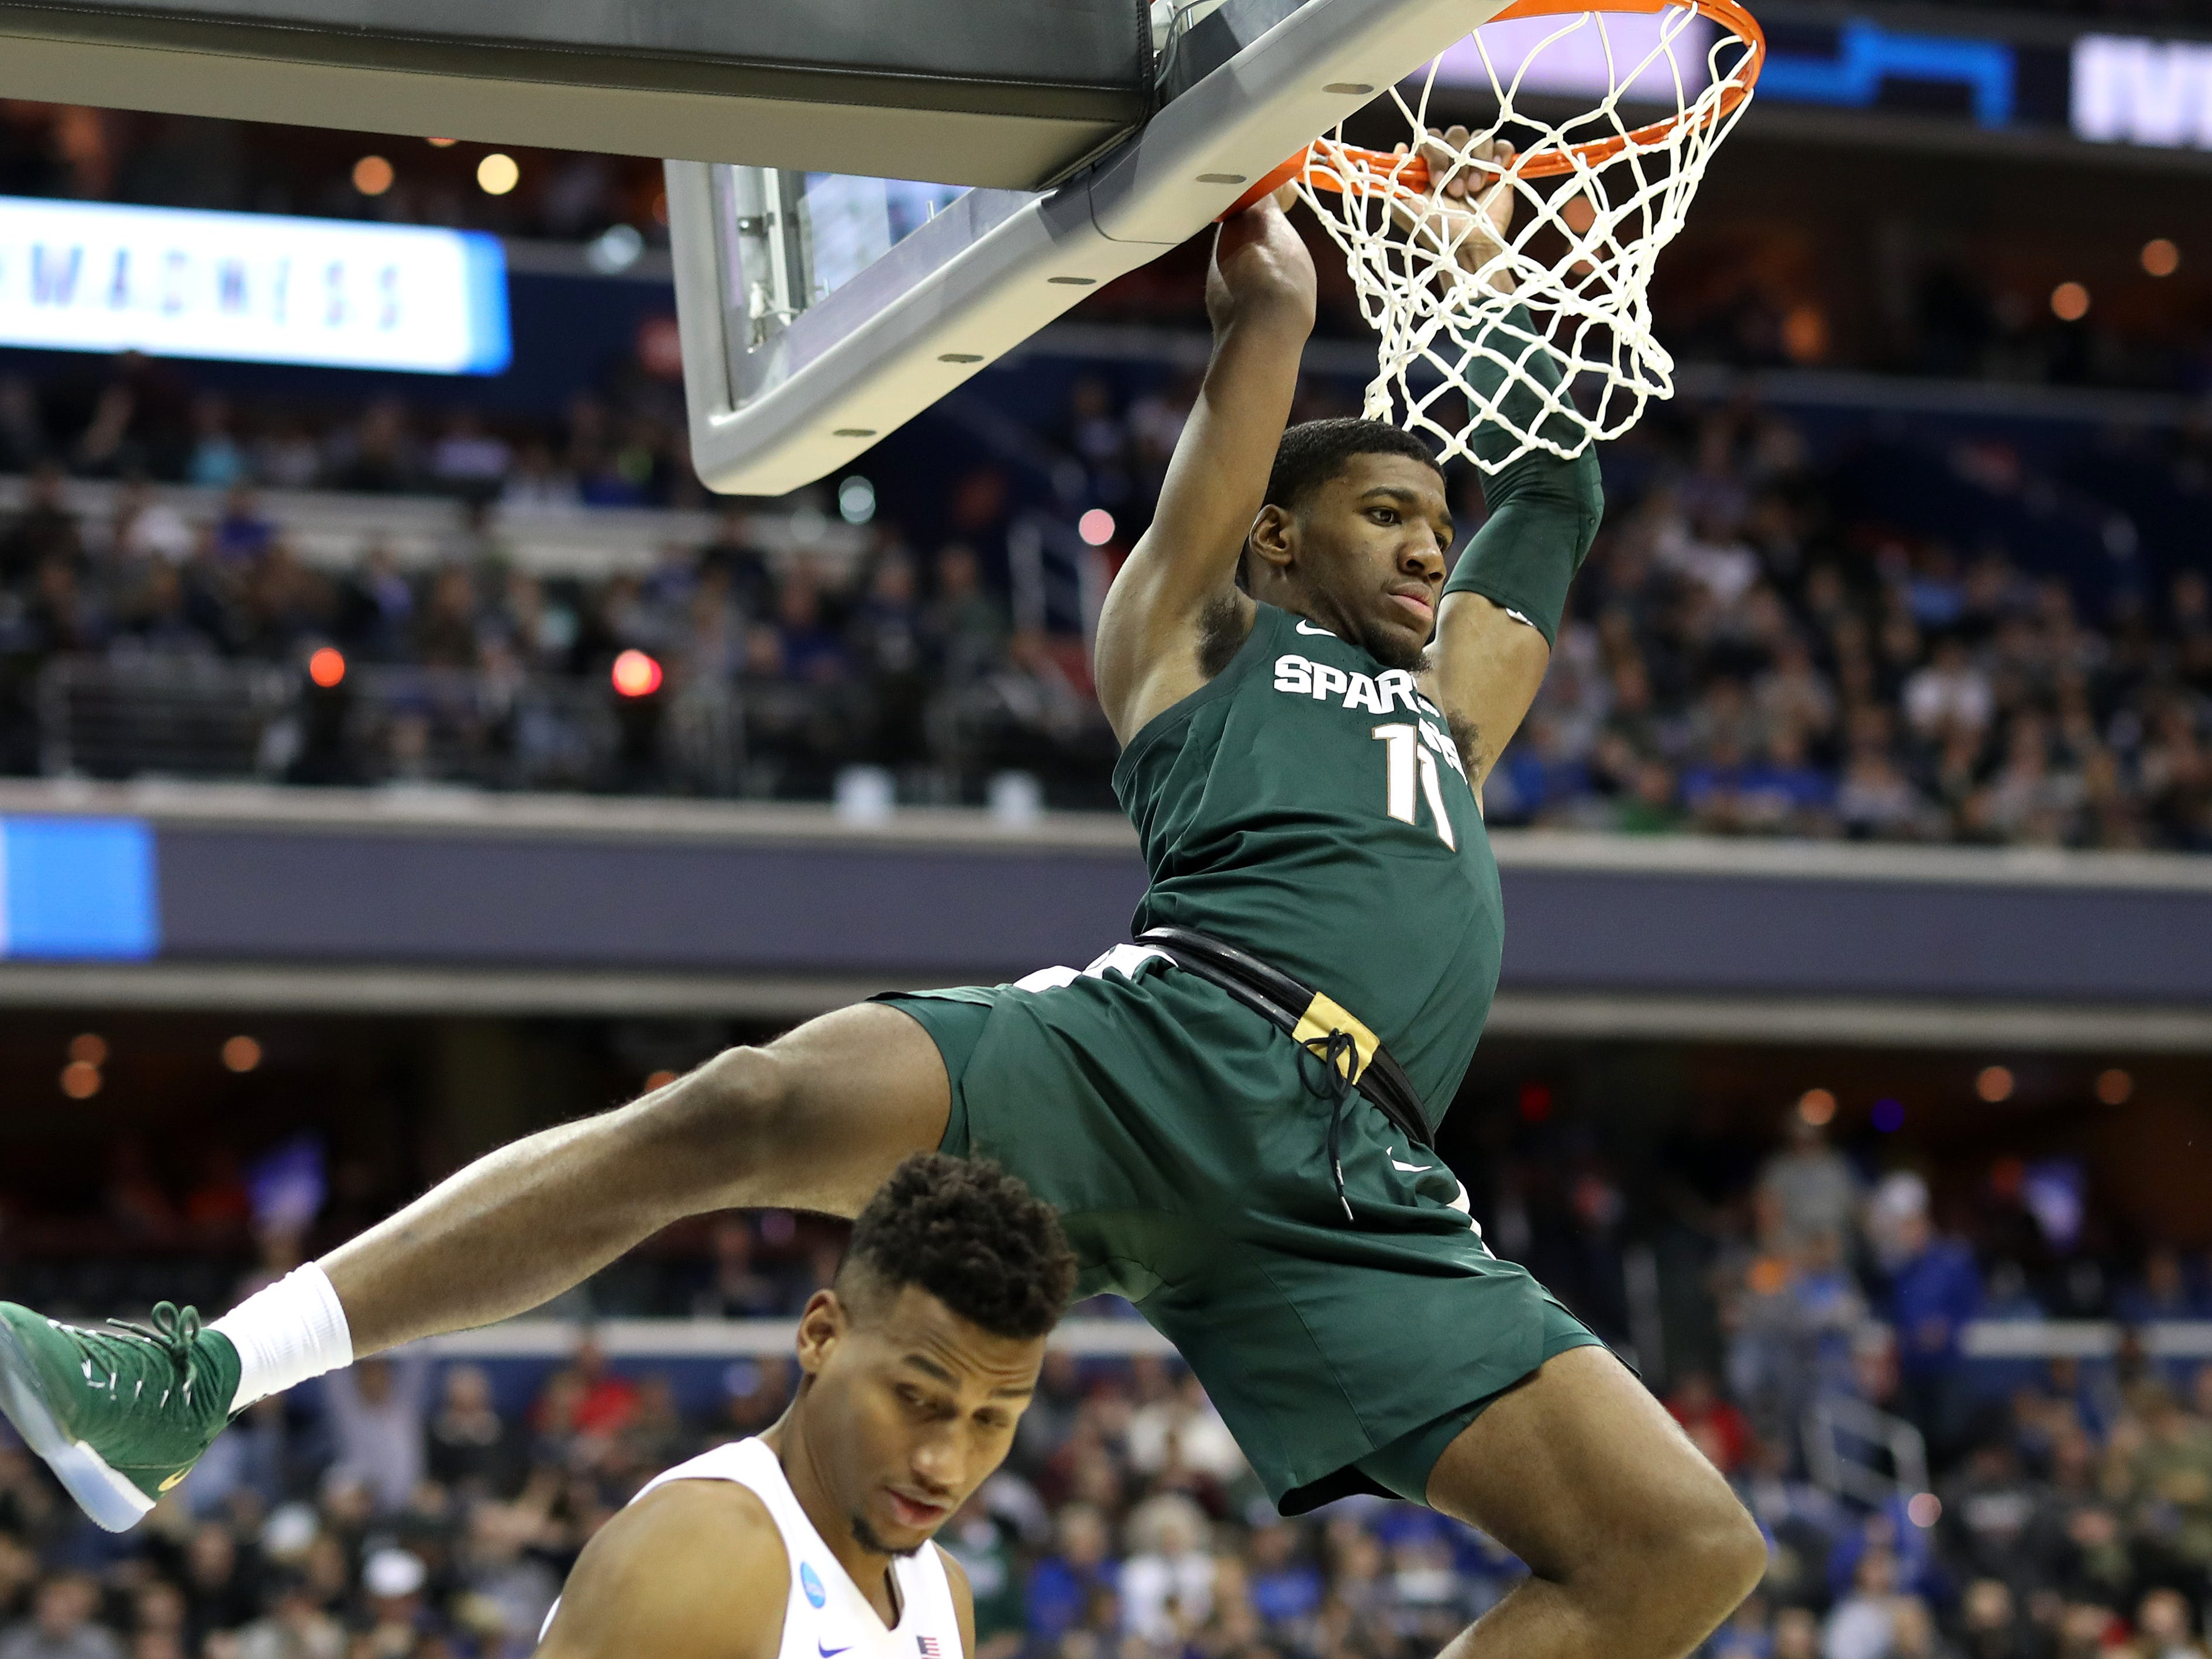 Michigan State's Aaron Henry dunks the ball against Duke during the second half in the NCAA tournament East Region final on Sunday, March 31, 2019, in Washington.